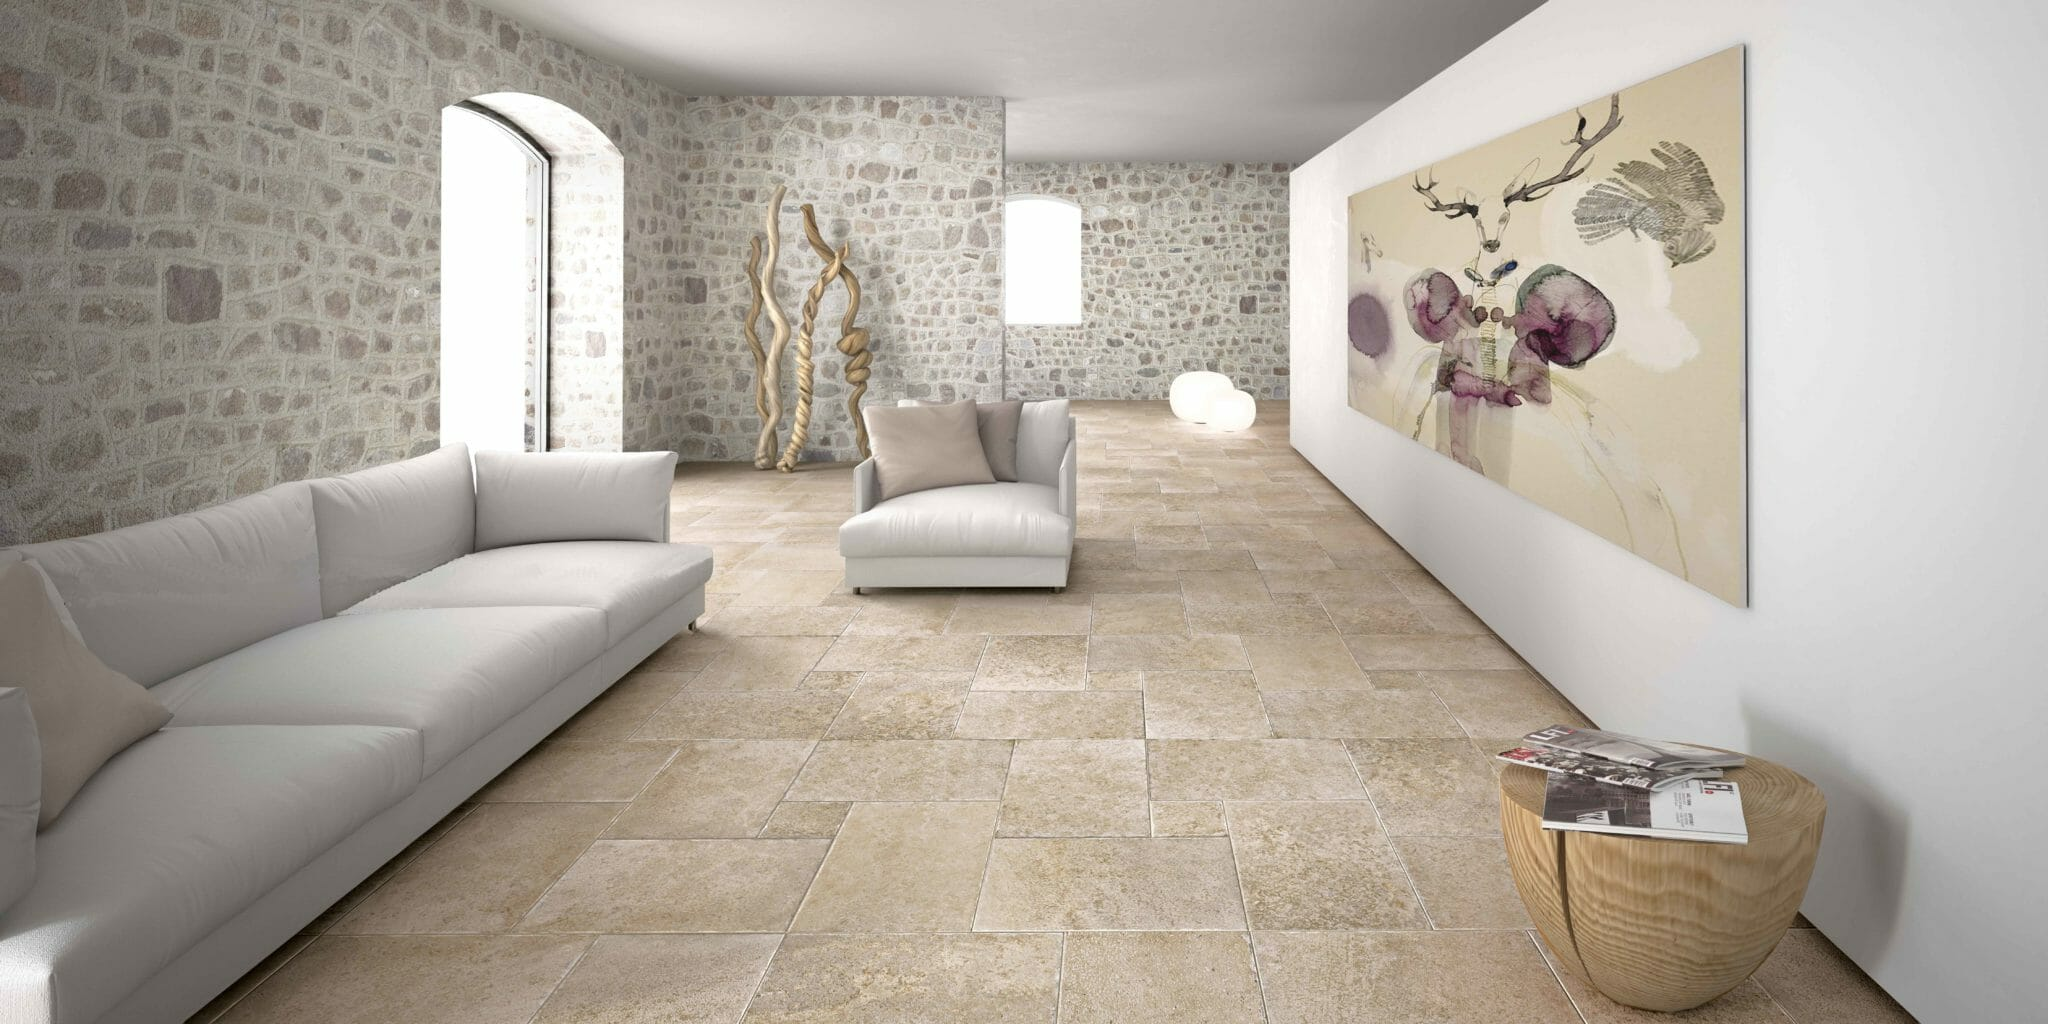 Travertine pool coping tiles travertine tiles melbourne travertine floor tiles dailygadgetfo Gallery